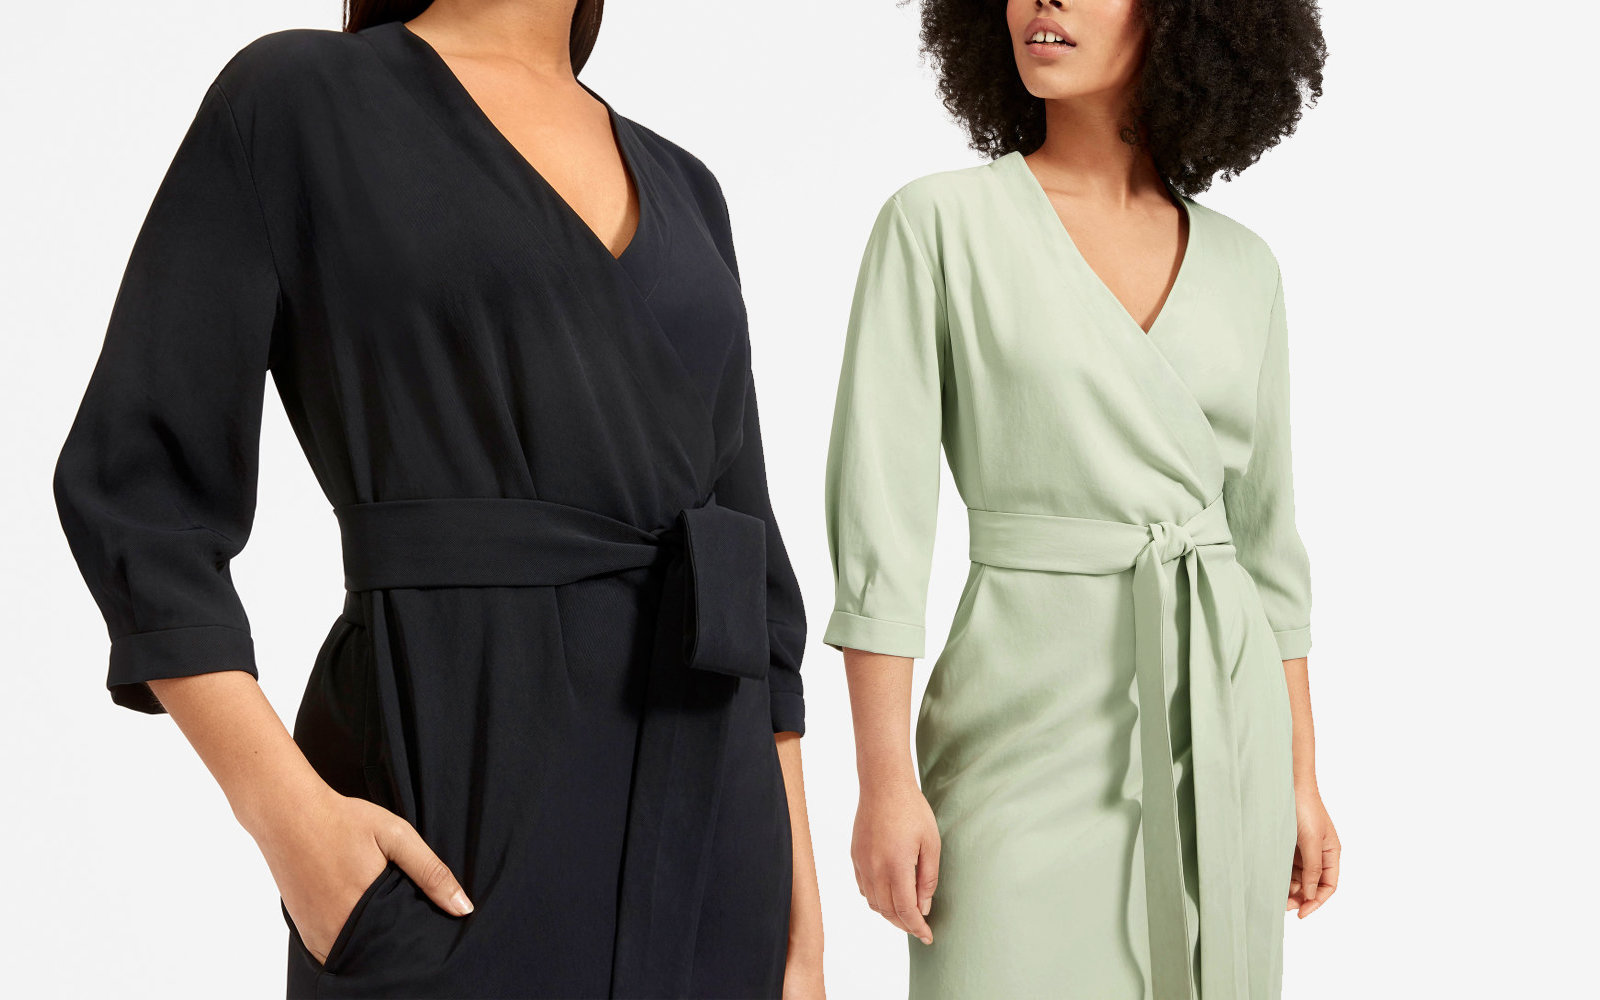 everlane-wrap-dresses-launch-EVERWRAP0319.jpg